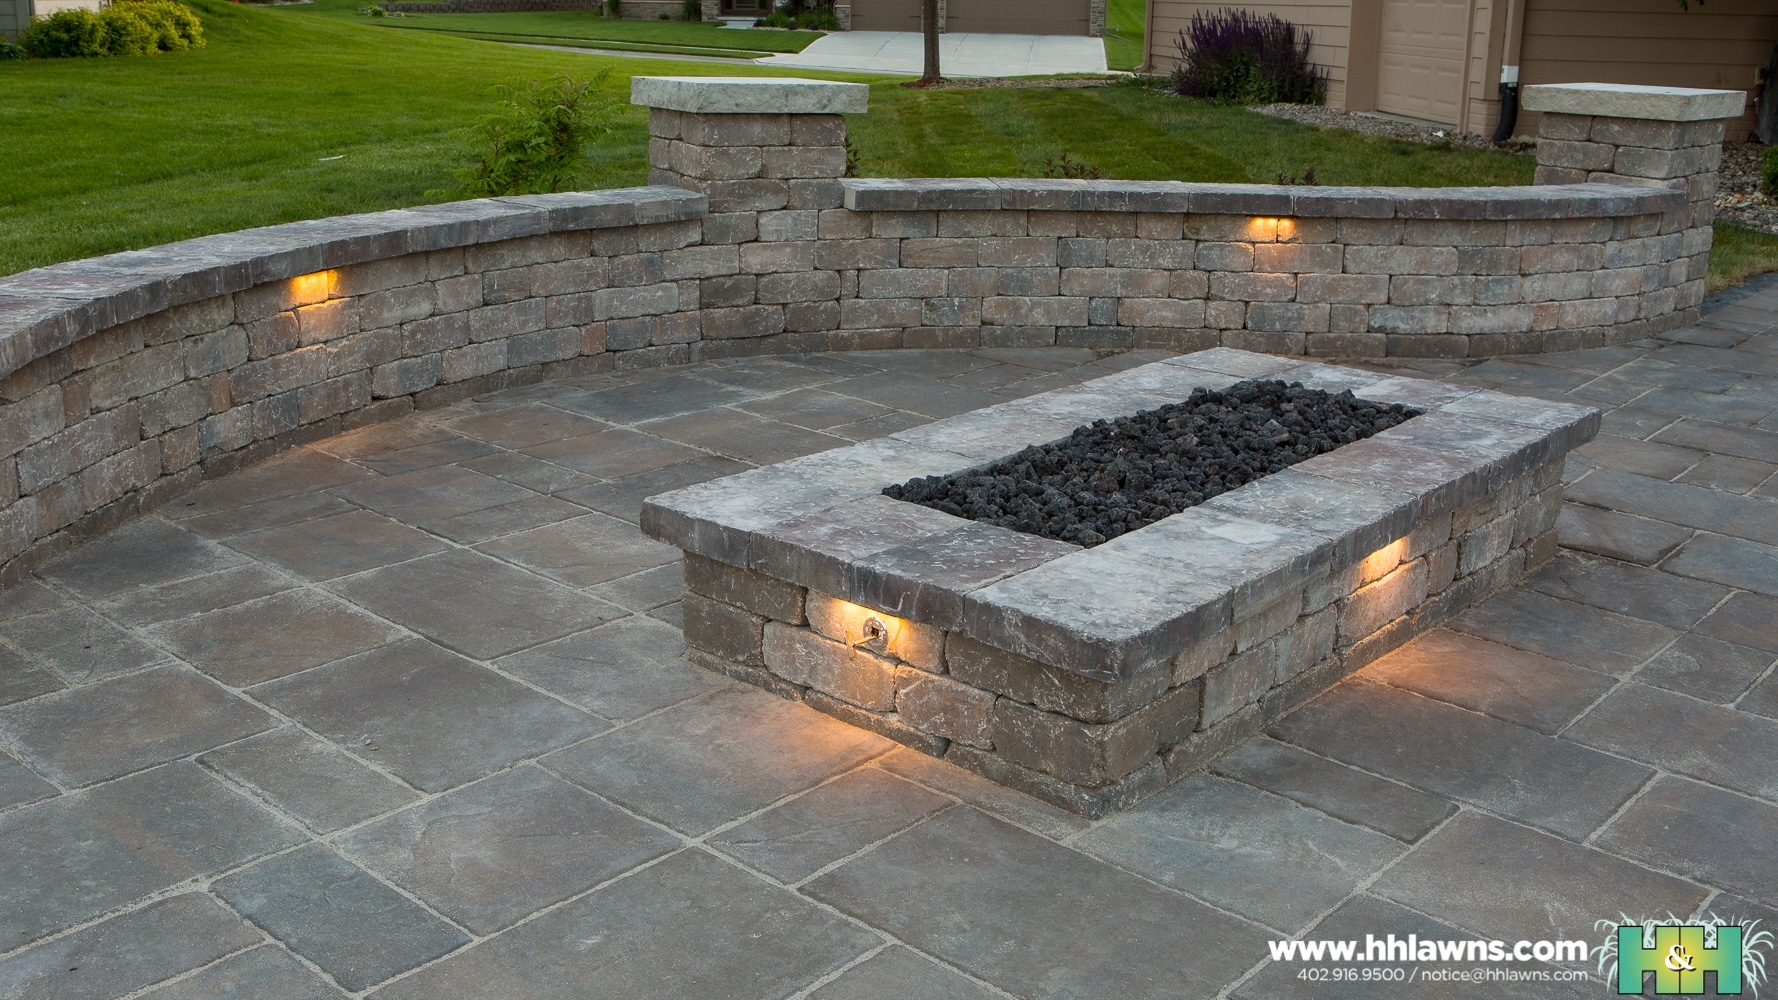 Dan Martin Outdoor Patio Landscape Project 2016 (H&H Lawn and Landscape)